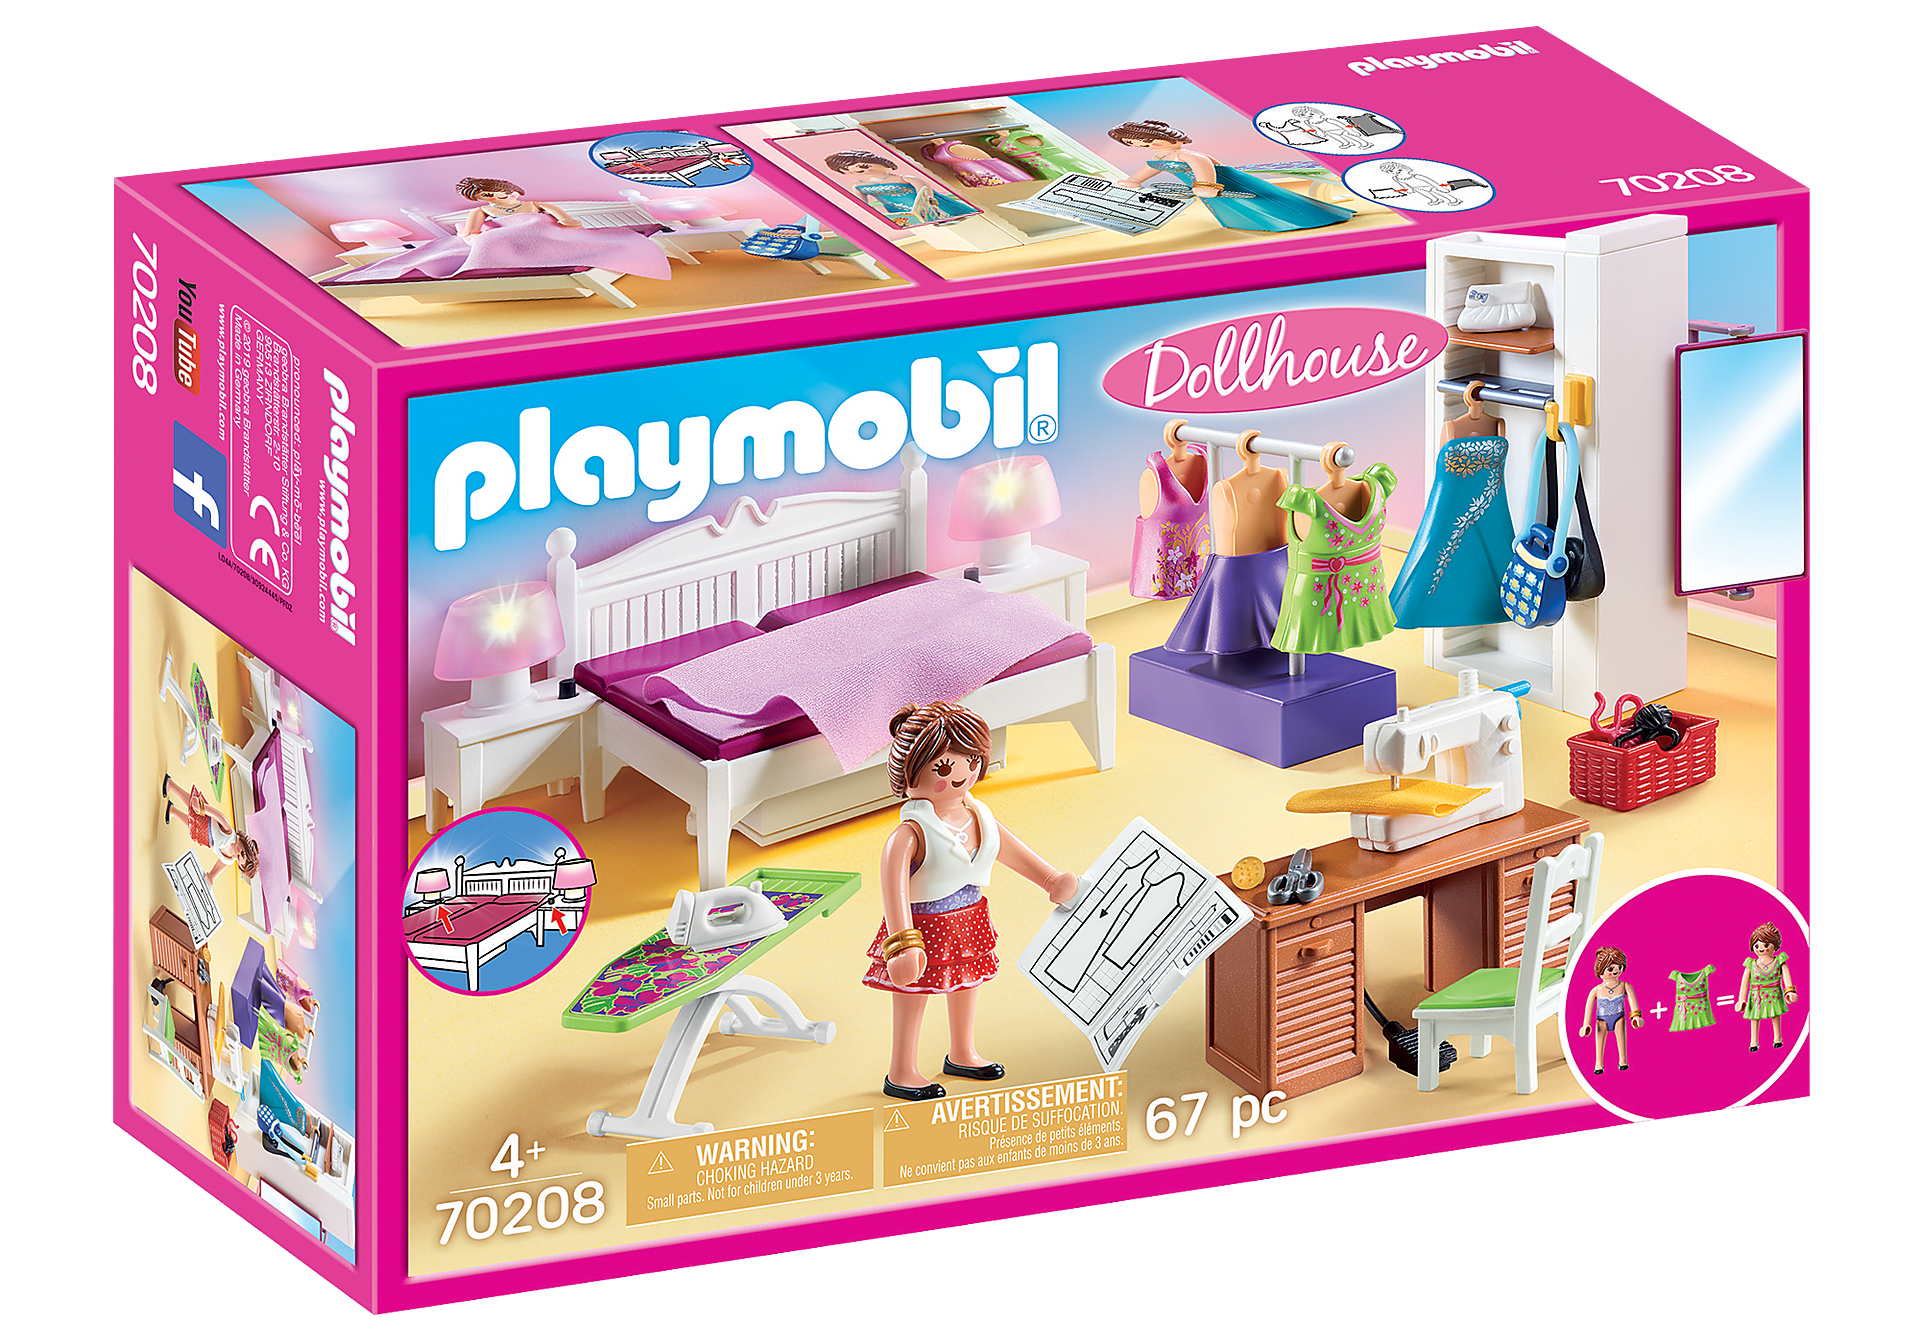 Playmobil- Bedroom with Sewing Corner (70208)